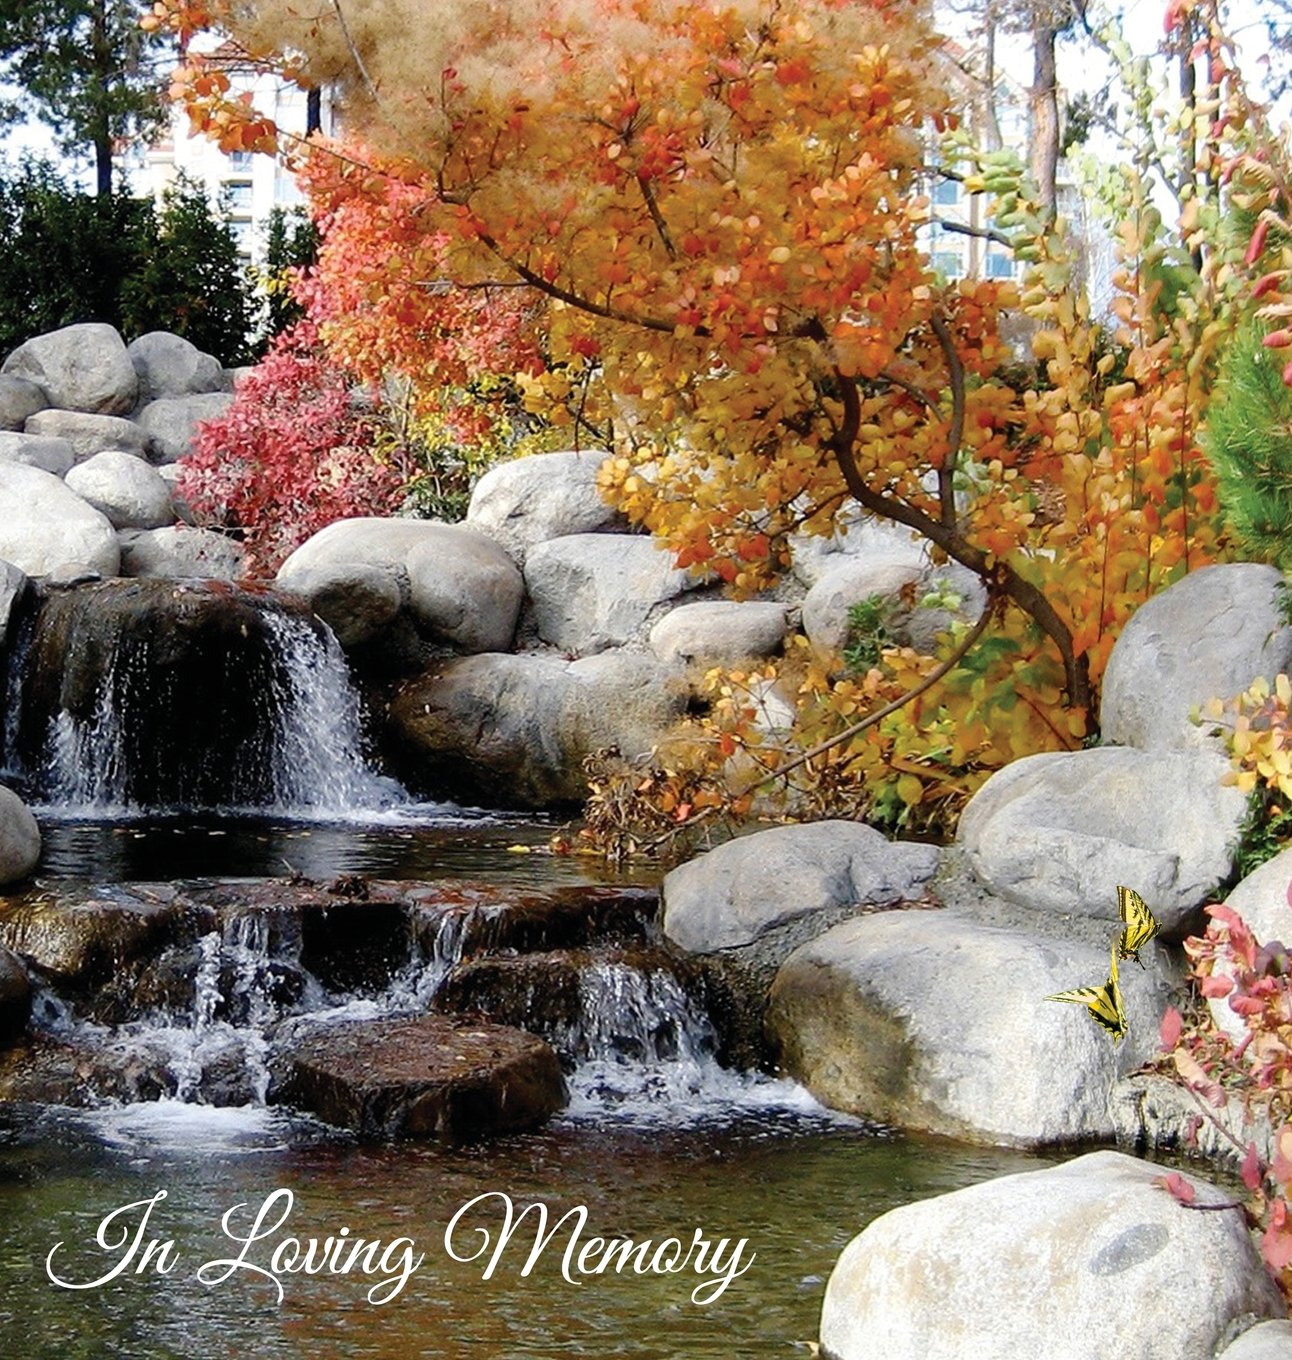 Funeral Guest Book in Loving Memory, Memorial Guest Book, Condolence Book, Remembrance Book for Funerals or Wake, Memorial Service Guest Book: A ... a Gloss Finish with Waterfall Garden Scene